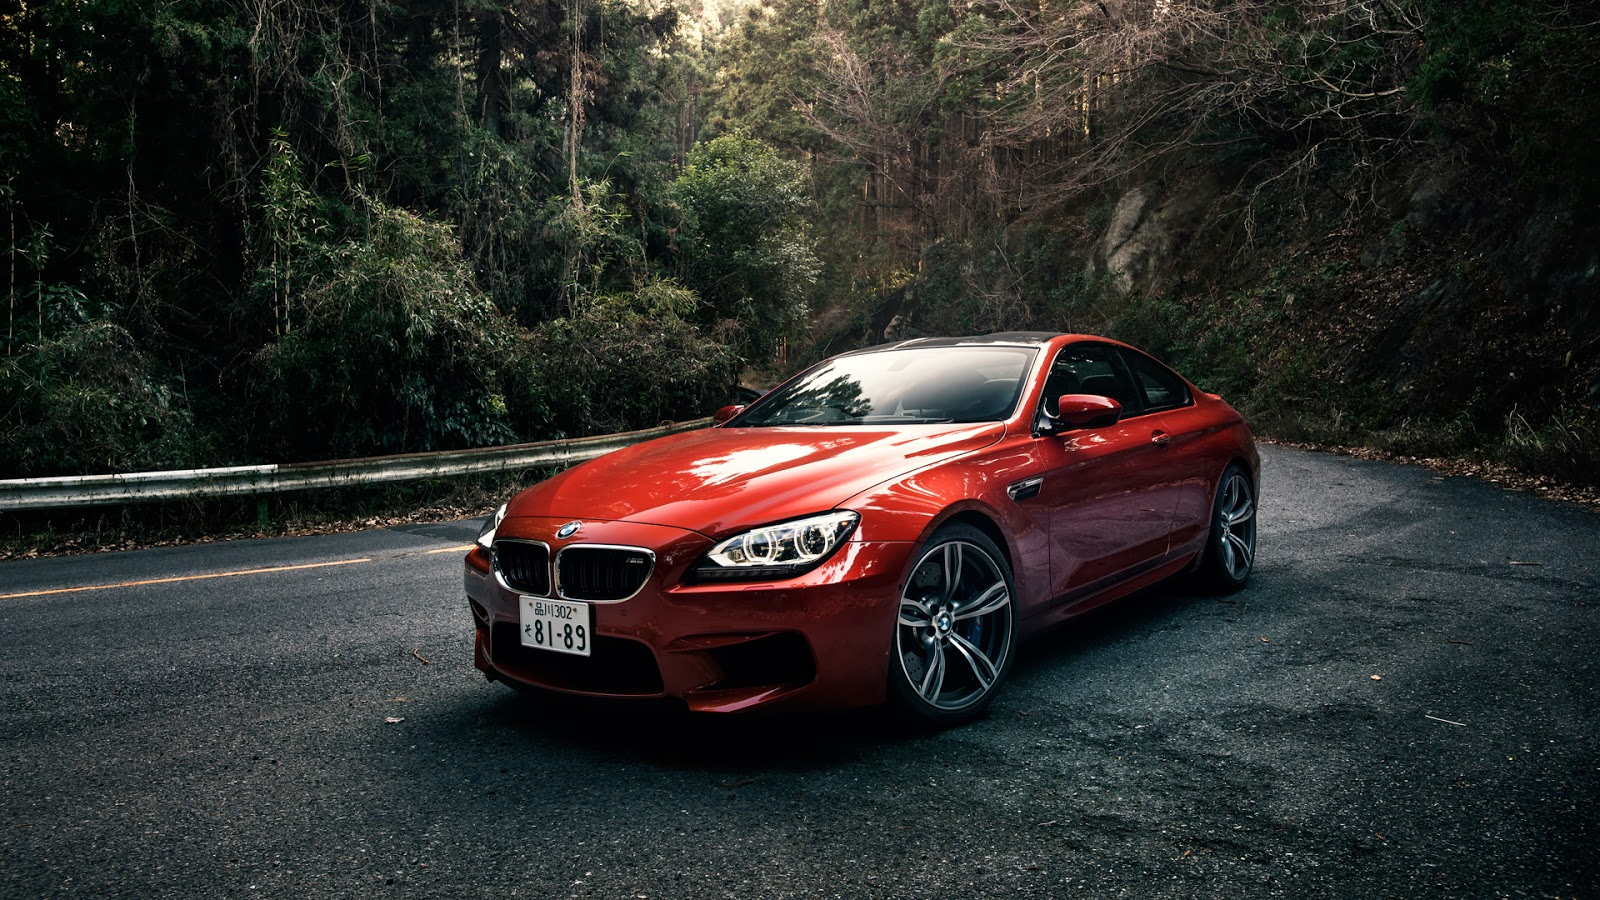 Bmw Hd Wallpapers 1080p Wallpapersafari